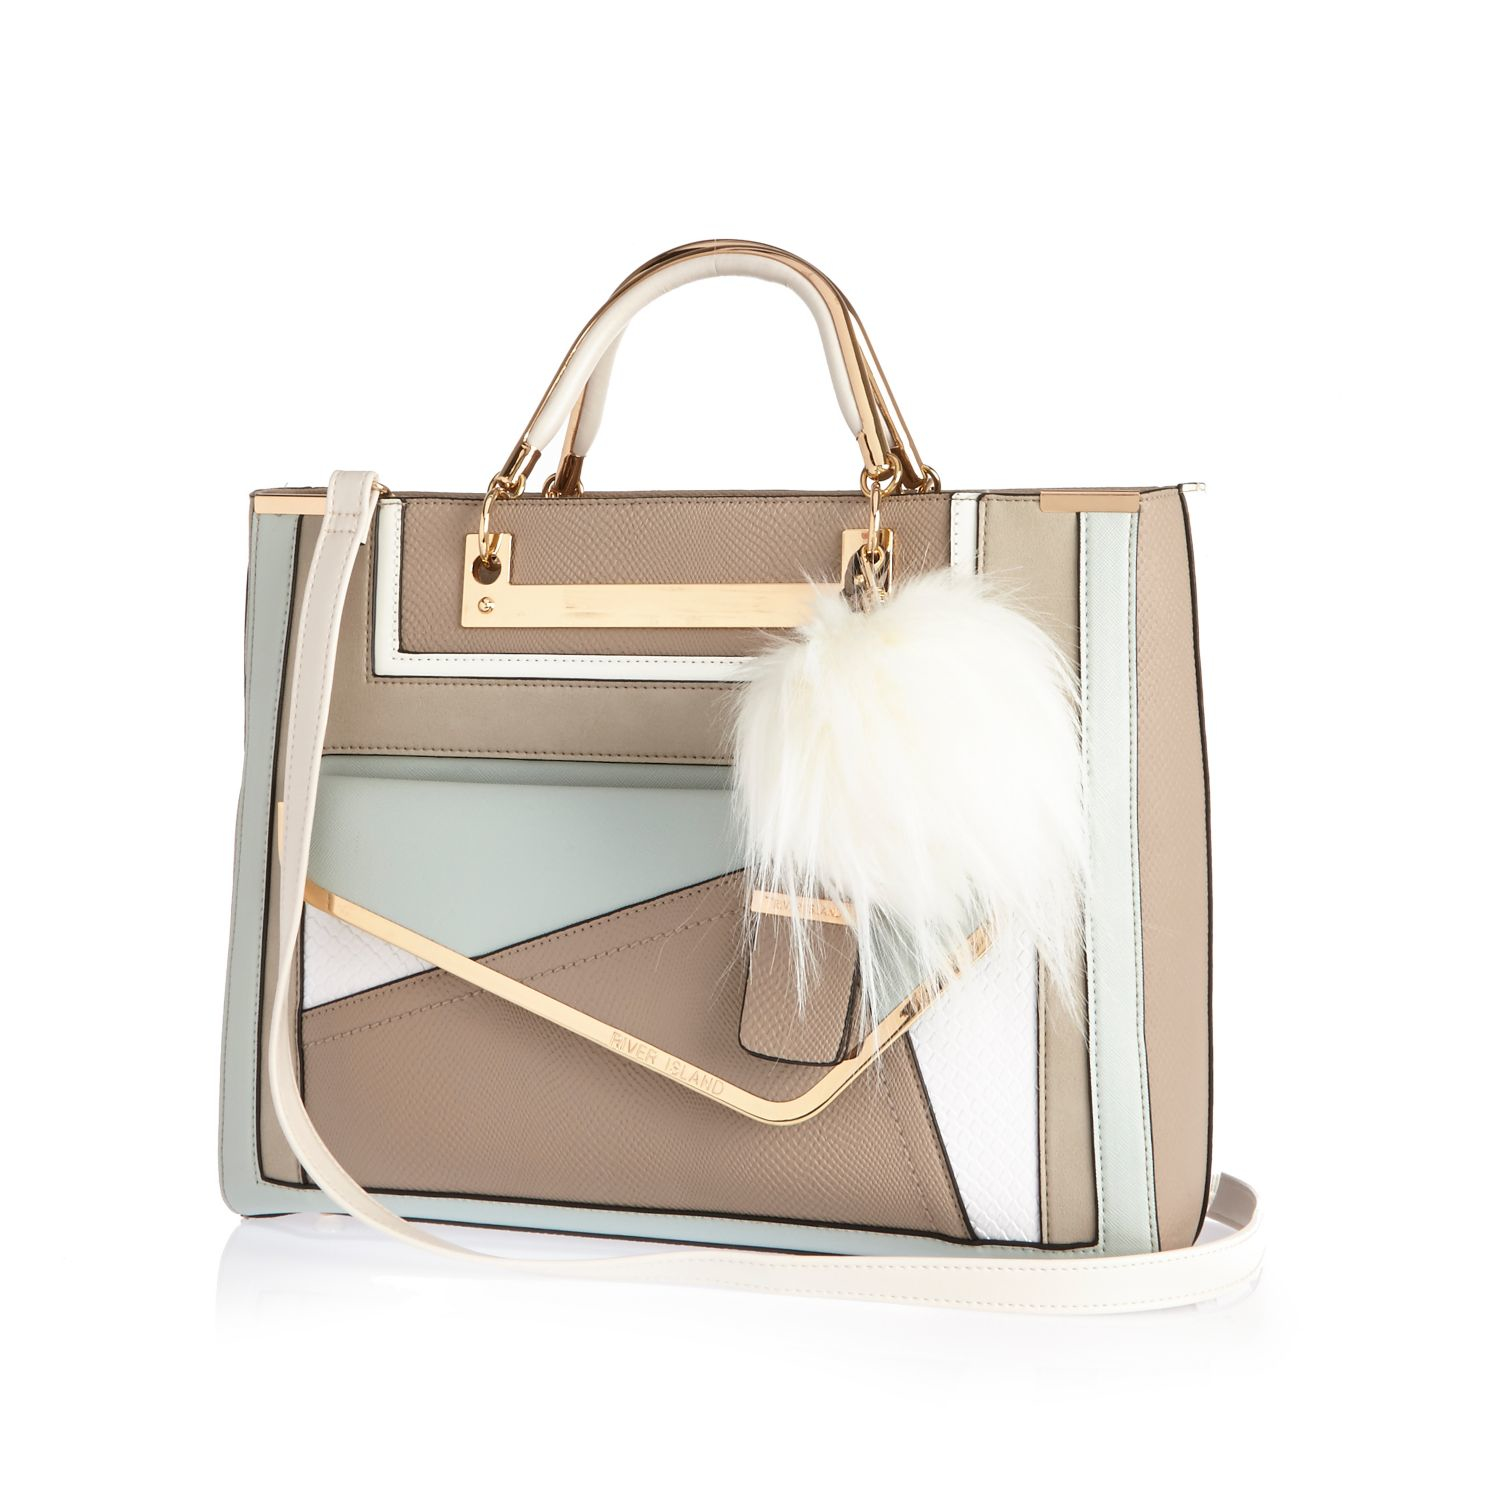 Image Result For Dkny Bags Uk